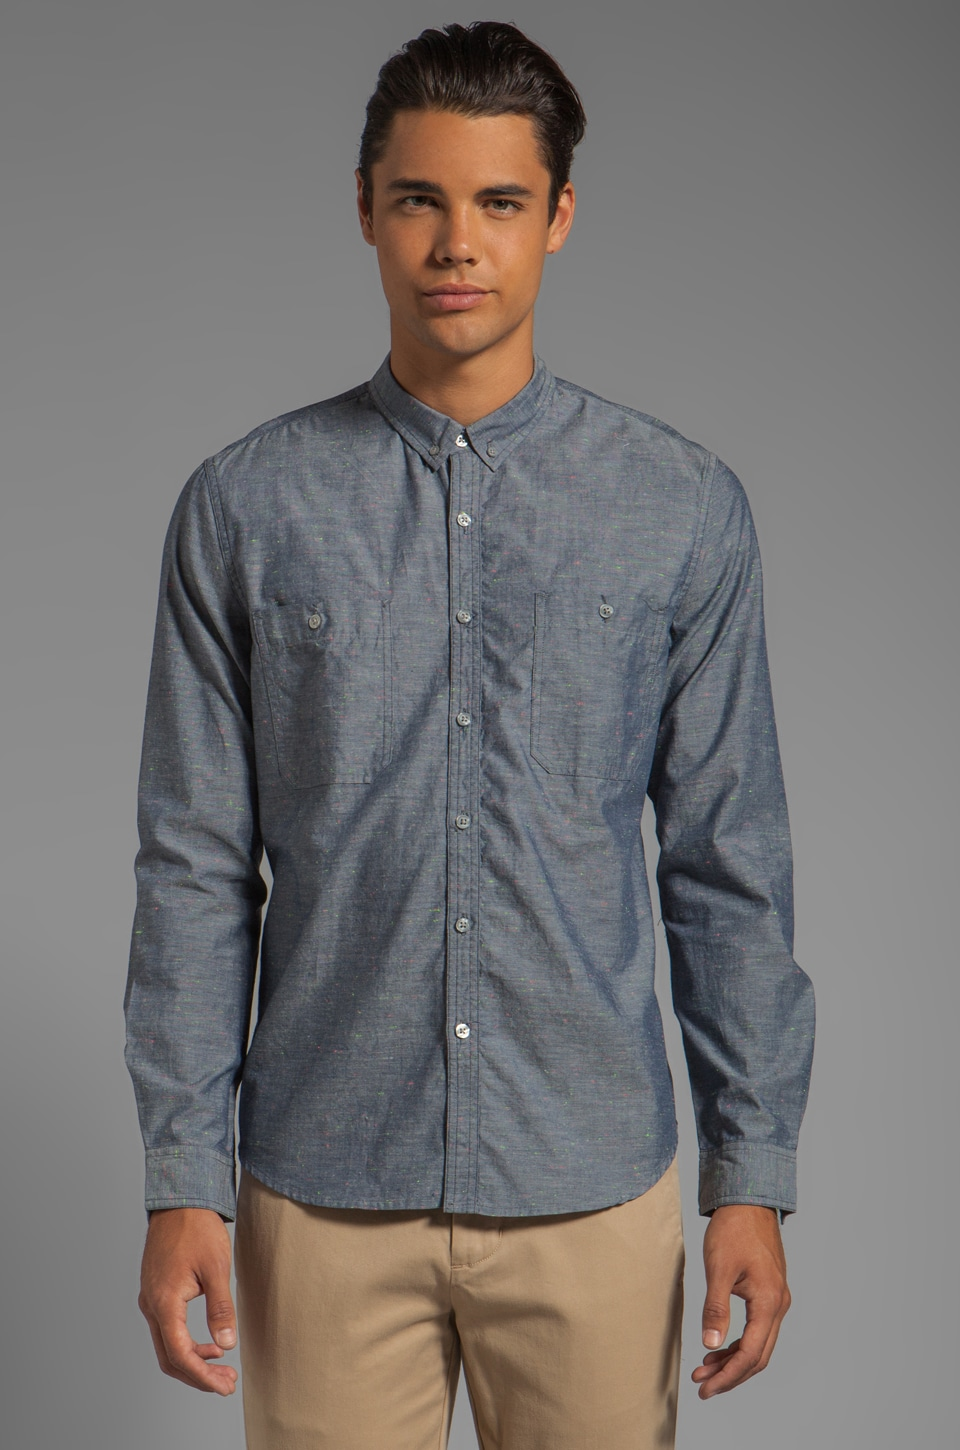 life/after/denim St Thomas Shirt in Greystone